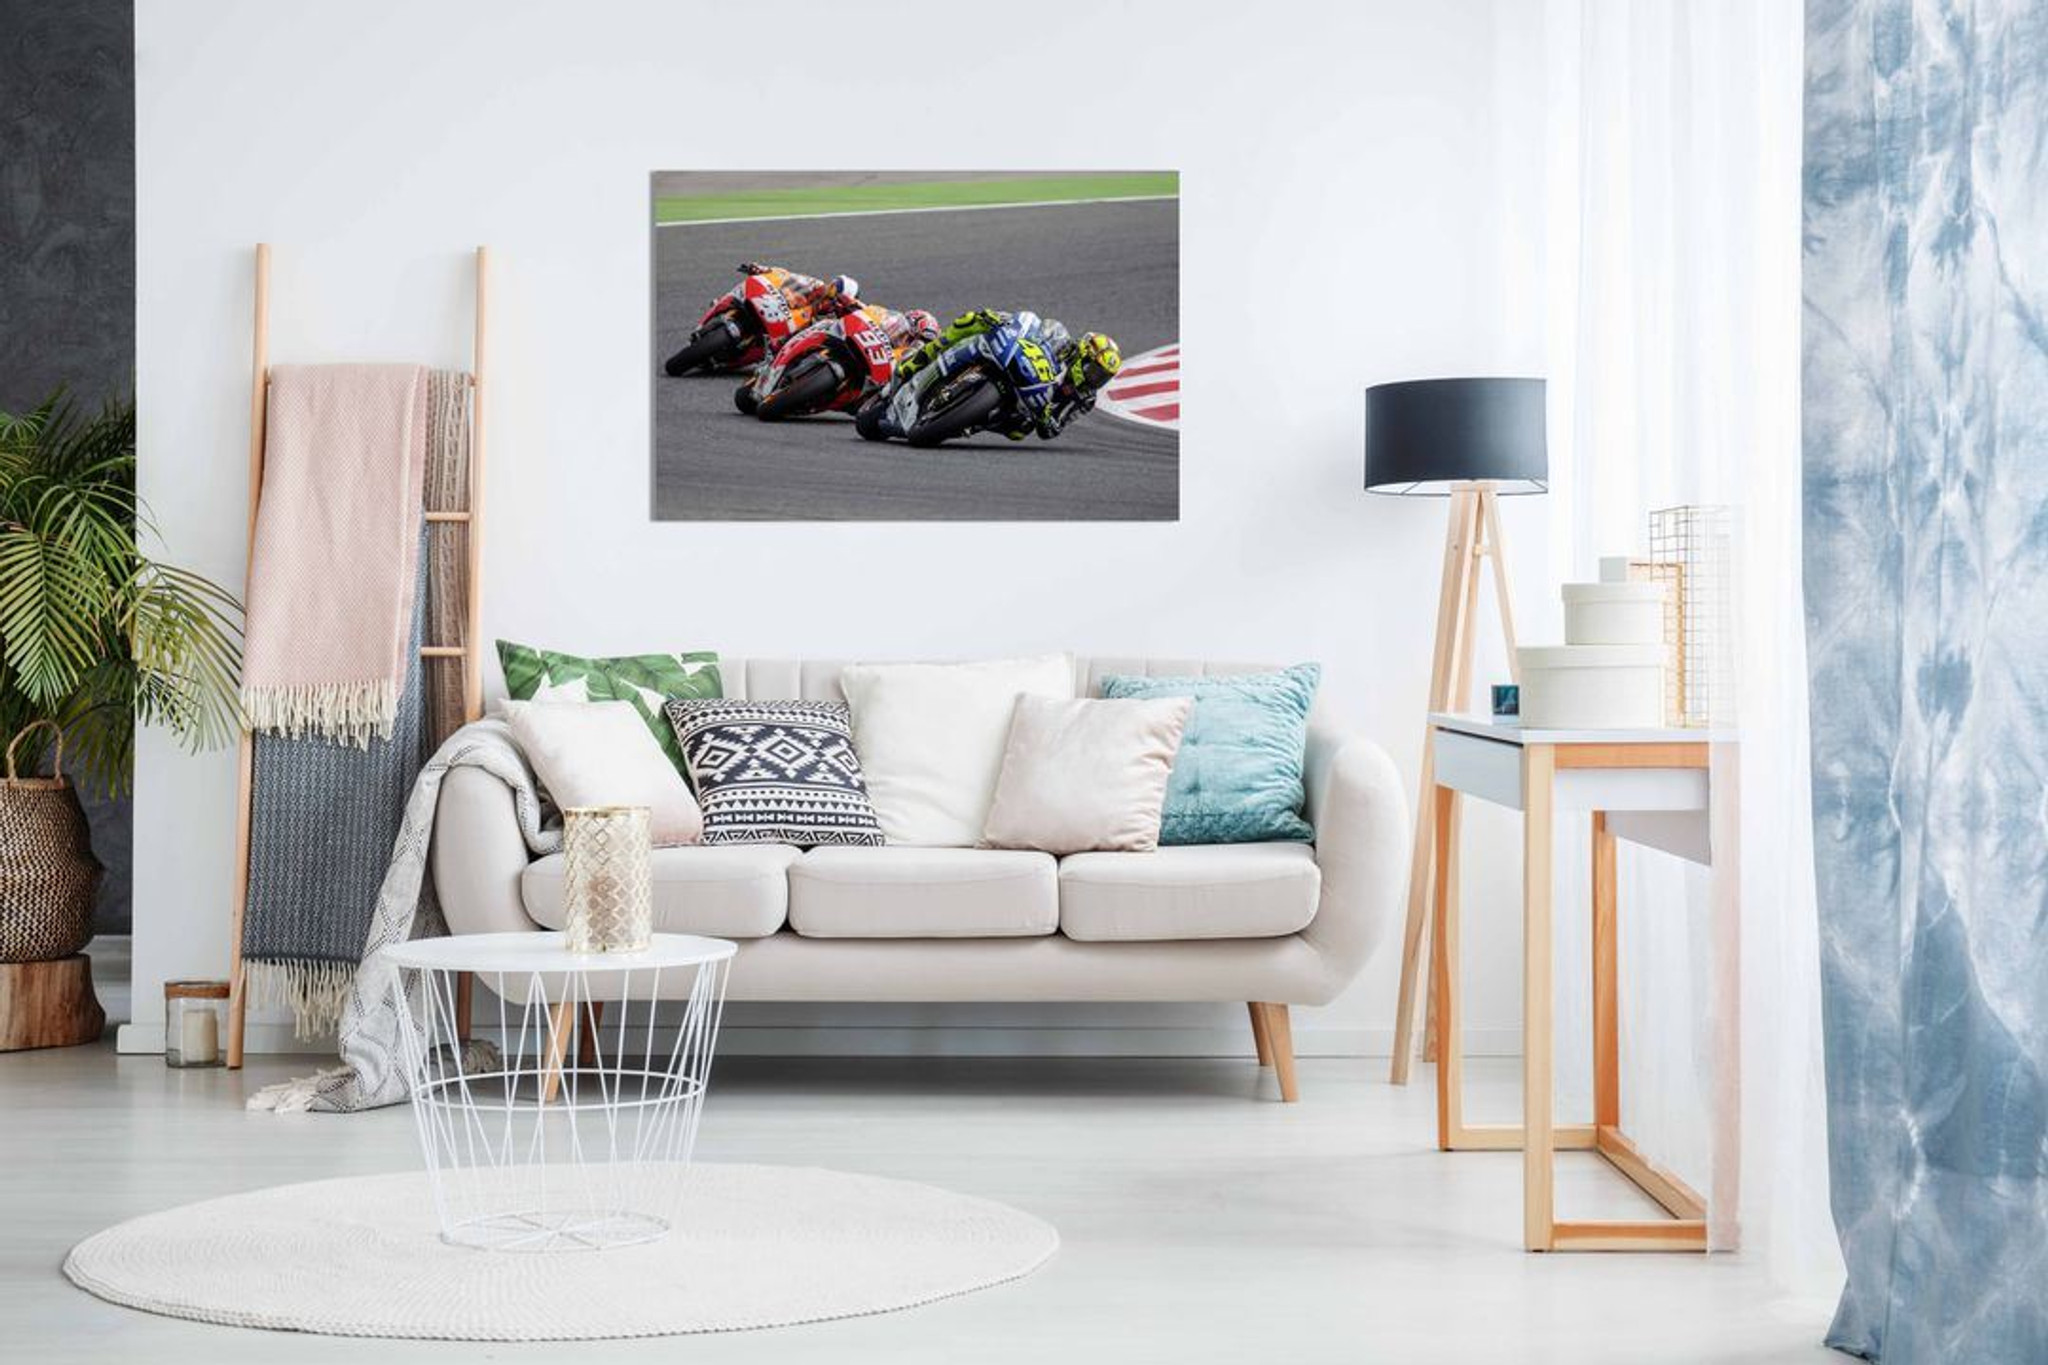 Valentino Rossi Marc Marquez  Dani Pedrosa Moto GP Canvas Wall Art Picture Print Home Decor